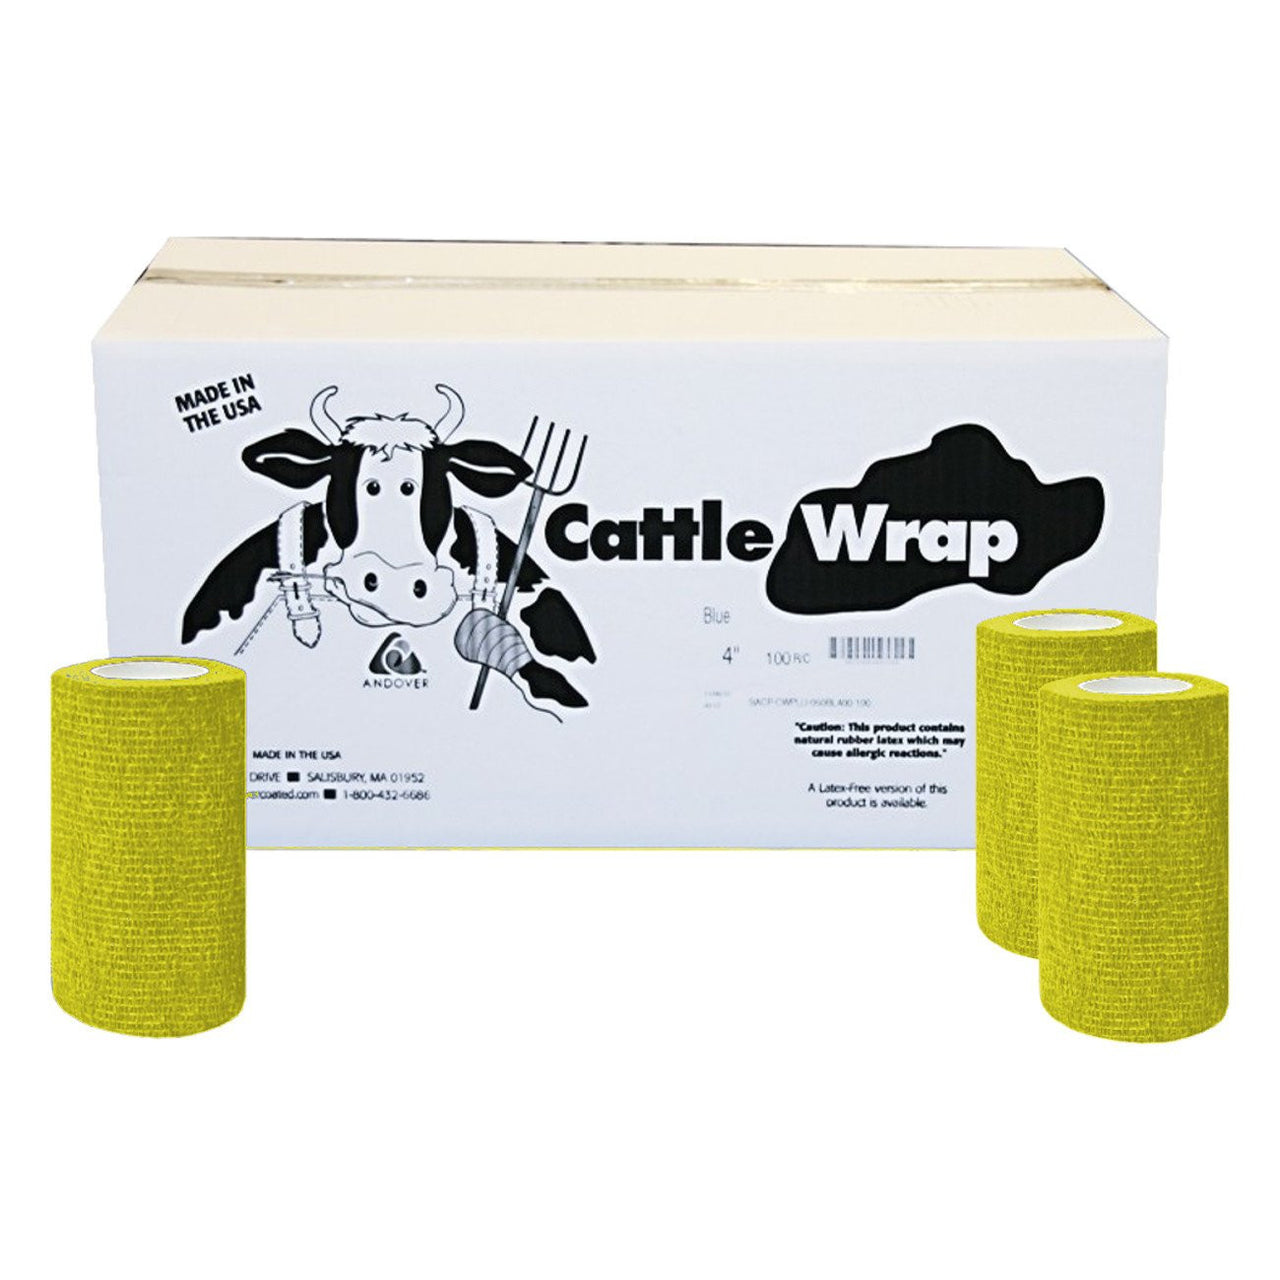 Cattle Wrap 4X 15 Bandage Yellow (100) - Wound Dressing Cattle Wrap - Canada